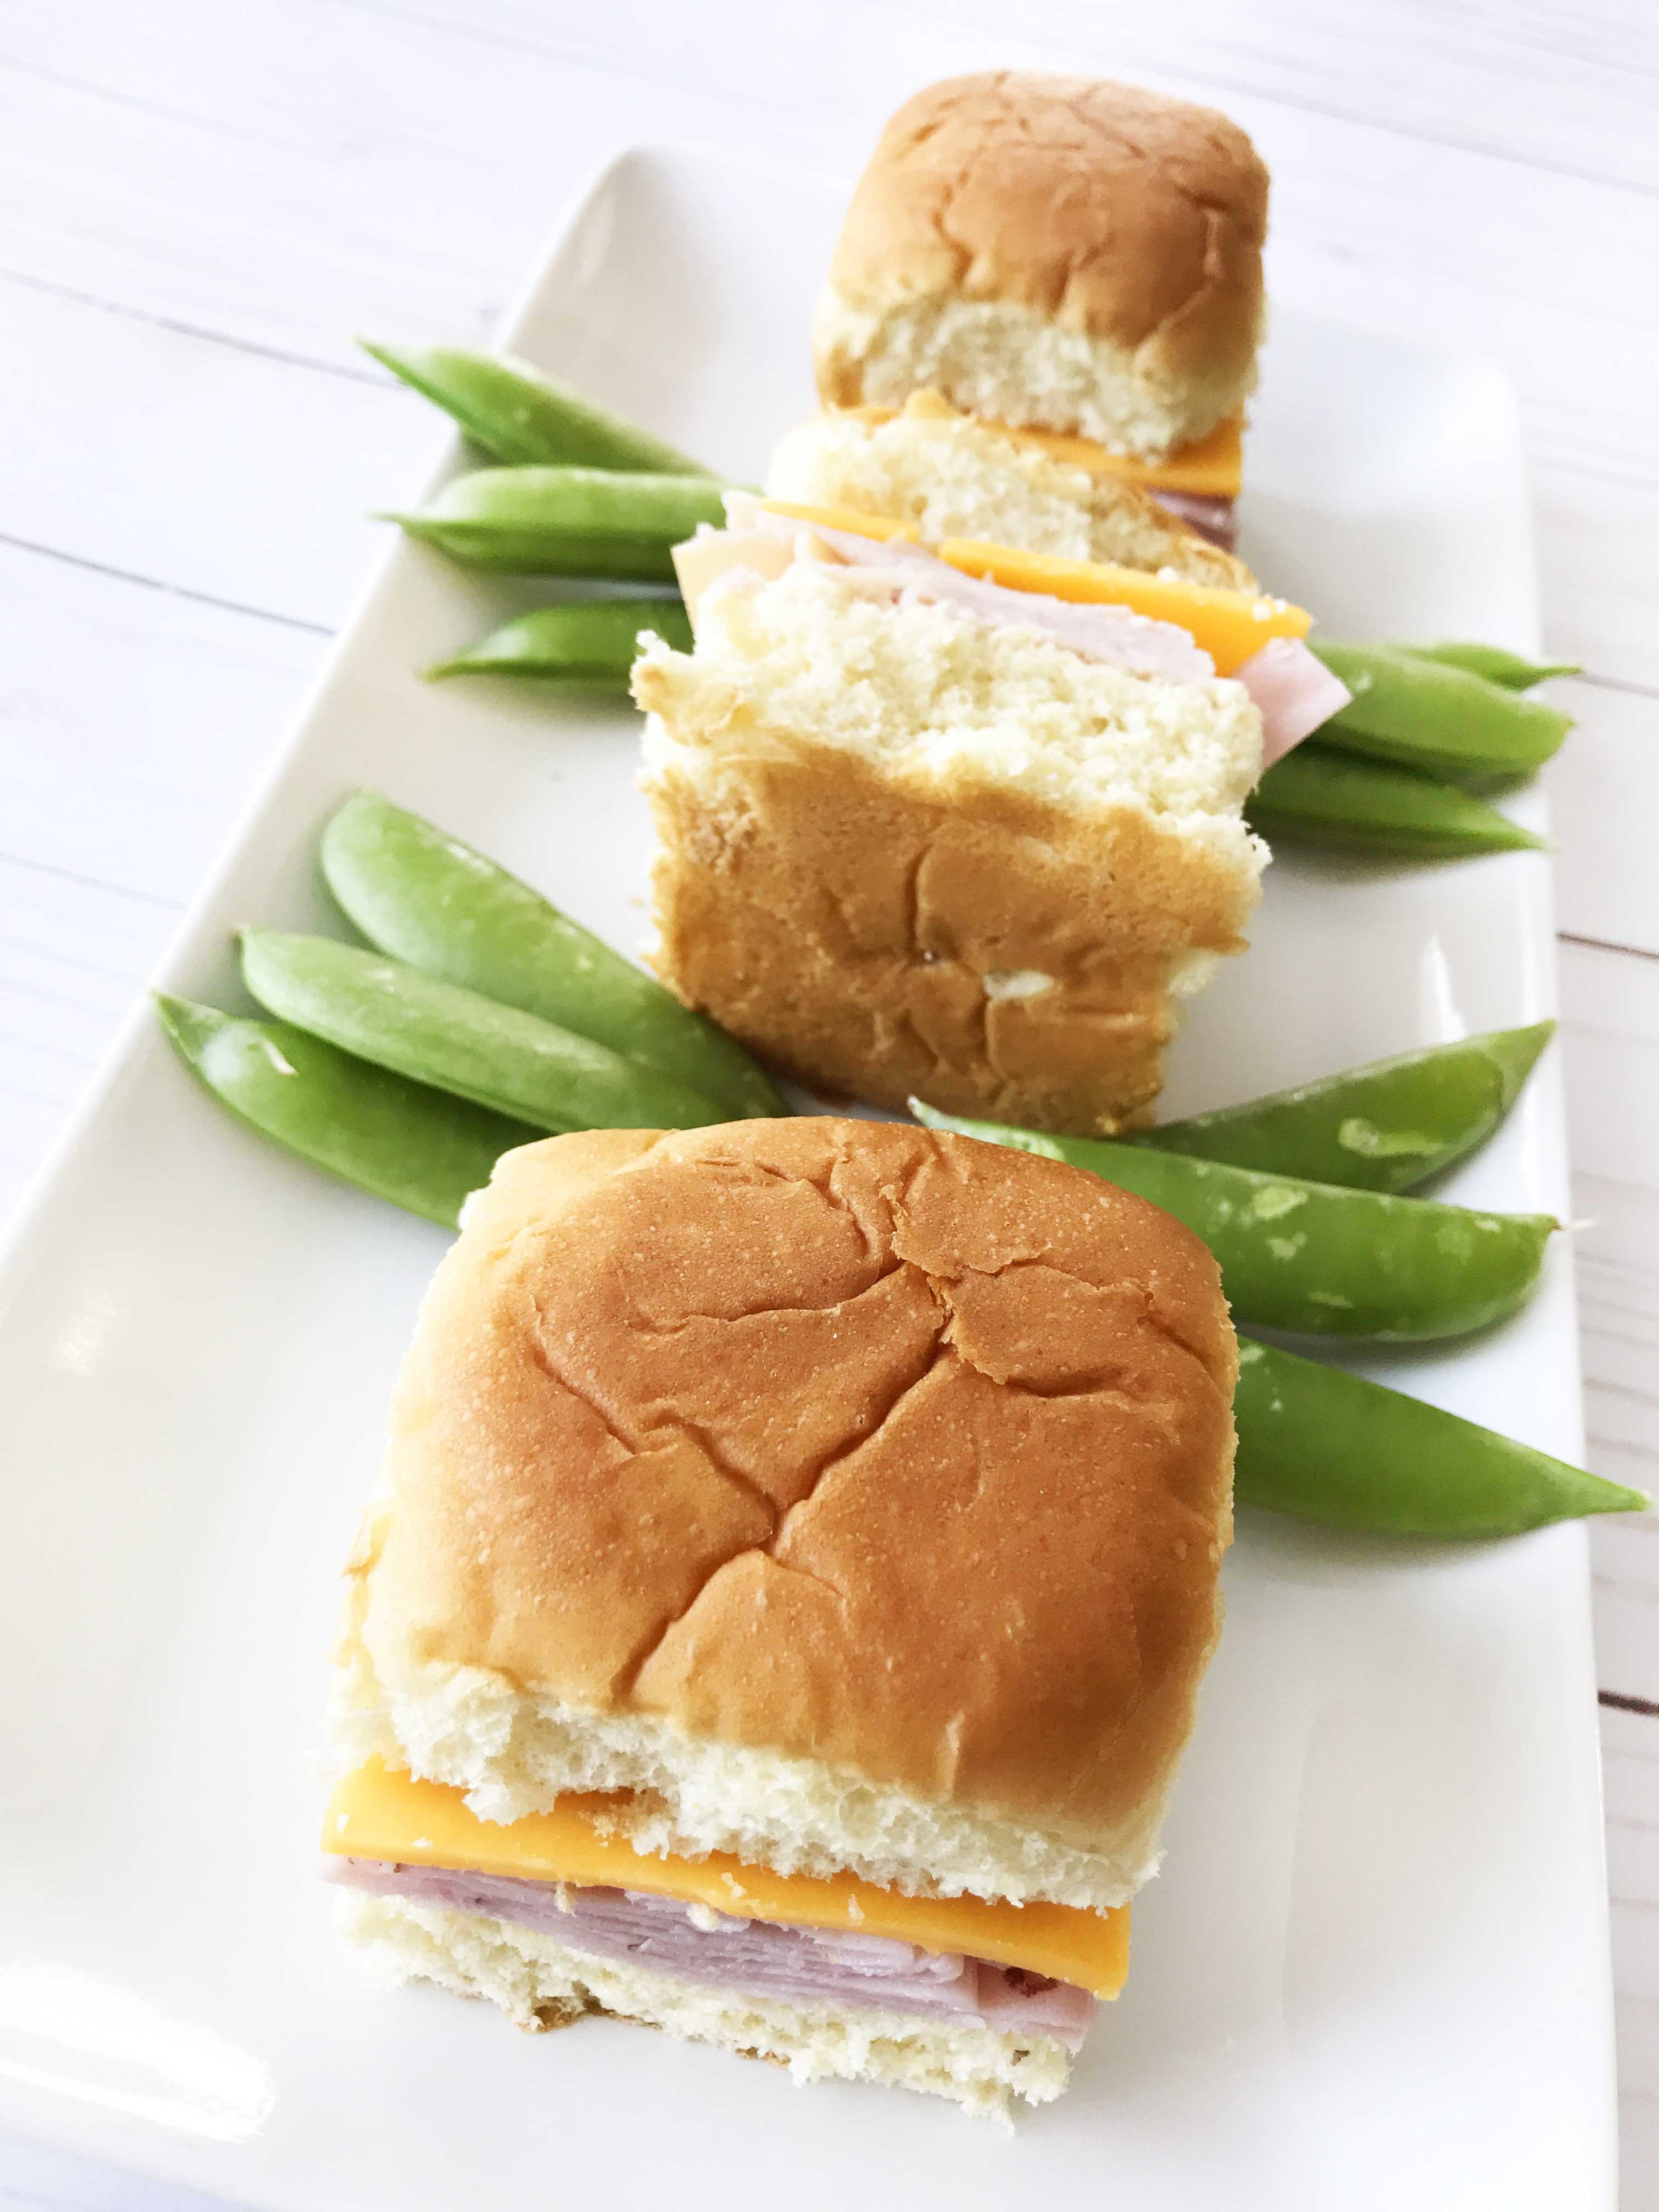 campwiches11.jpg